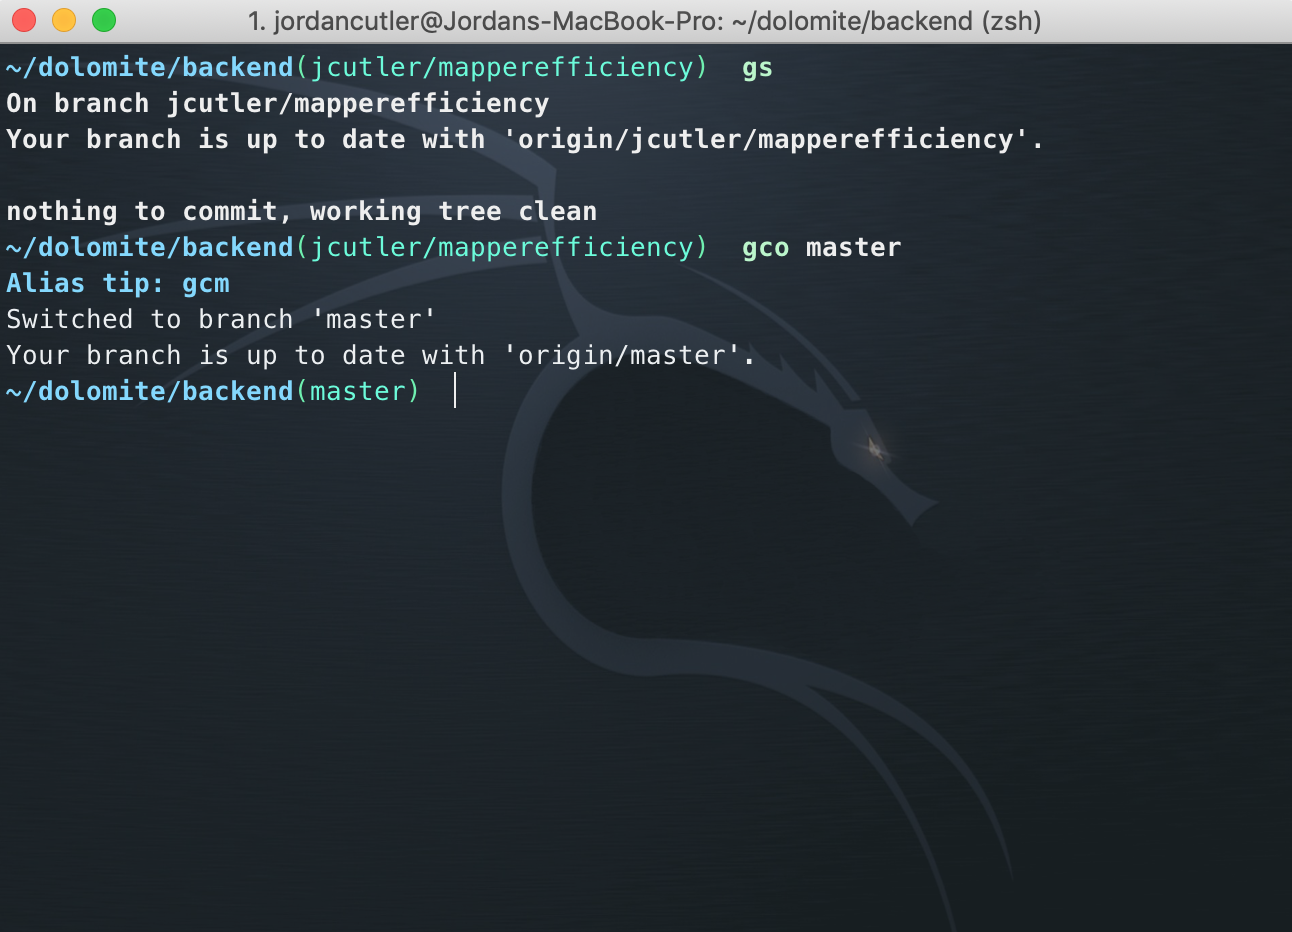 Supercharge Your Productivity With iTerm2 & zsh - Dolomite - Medium